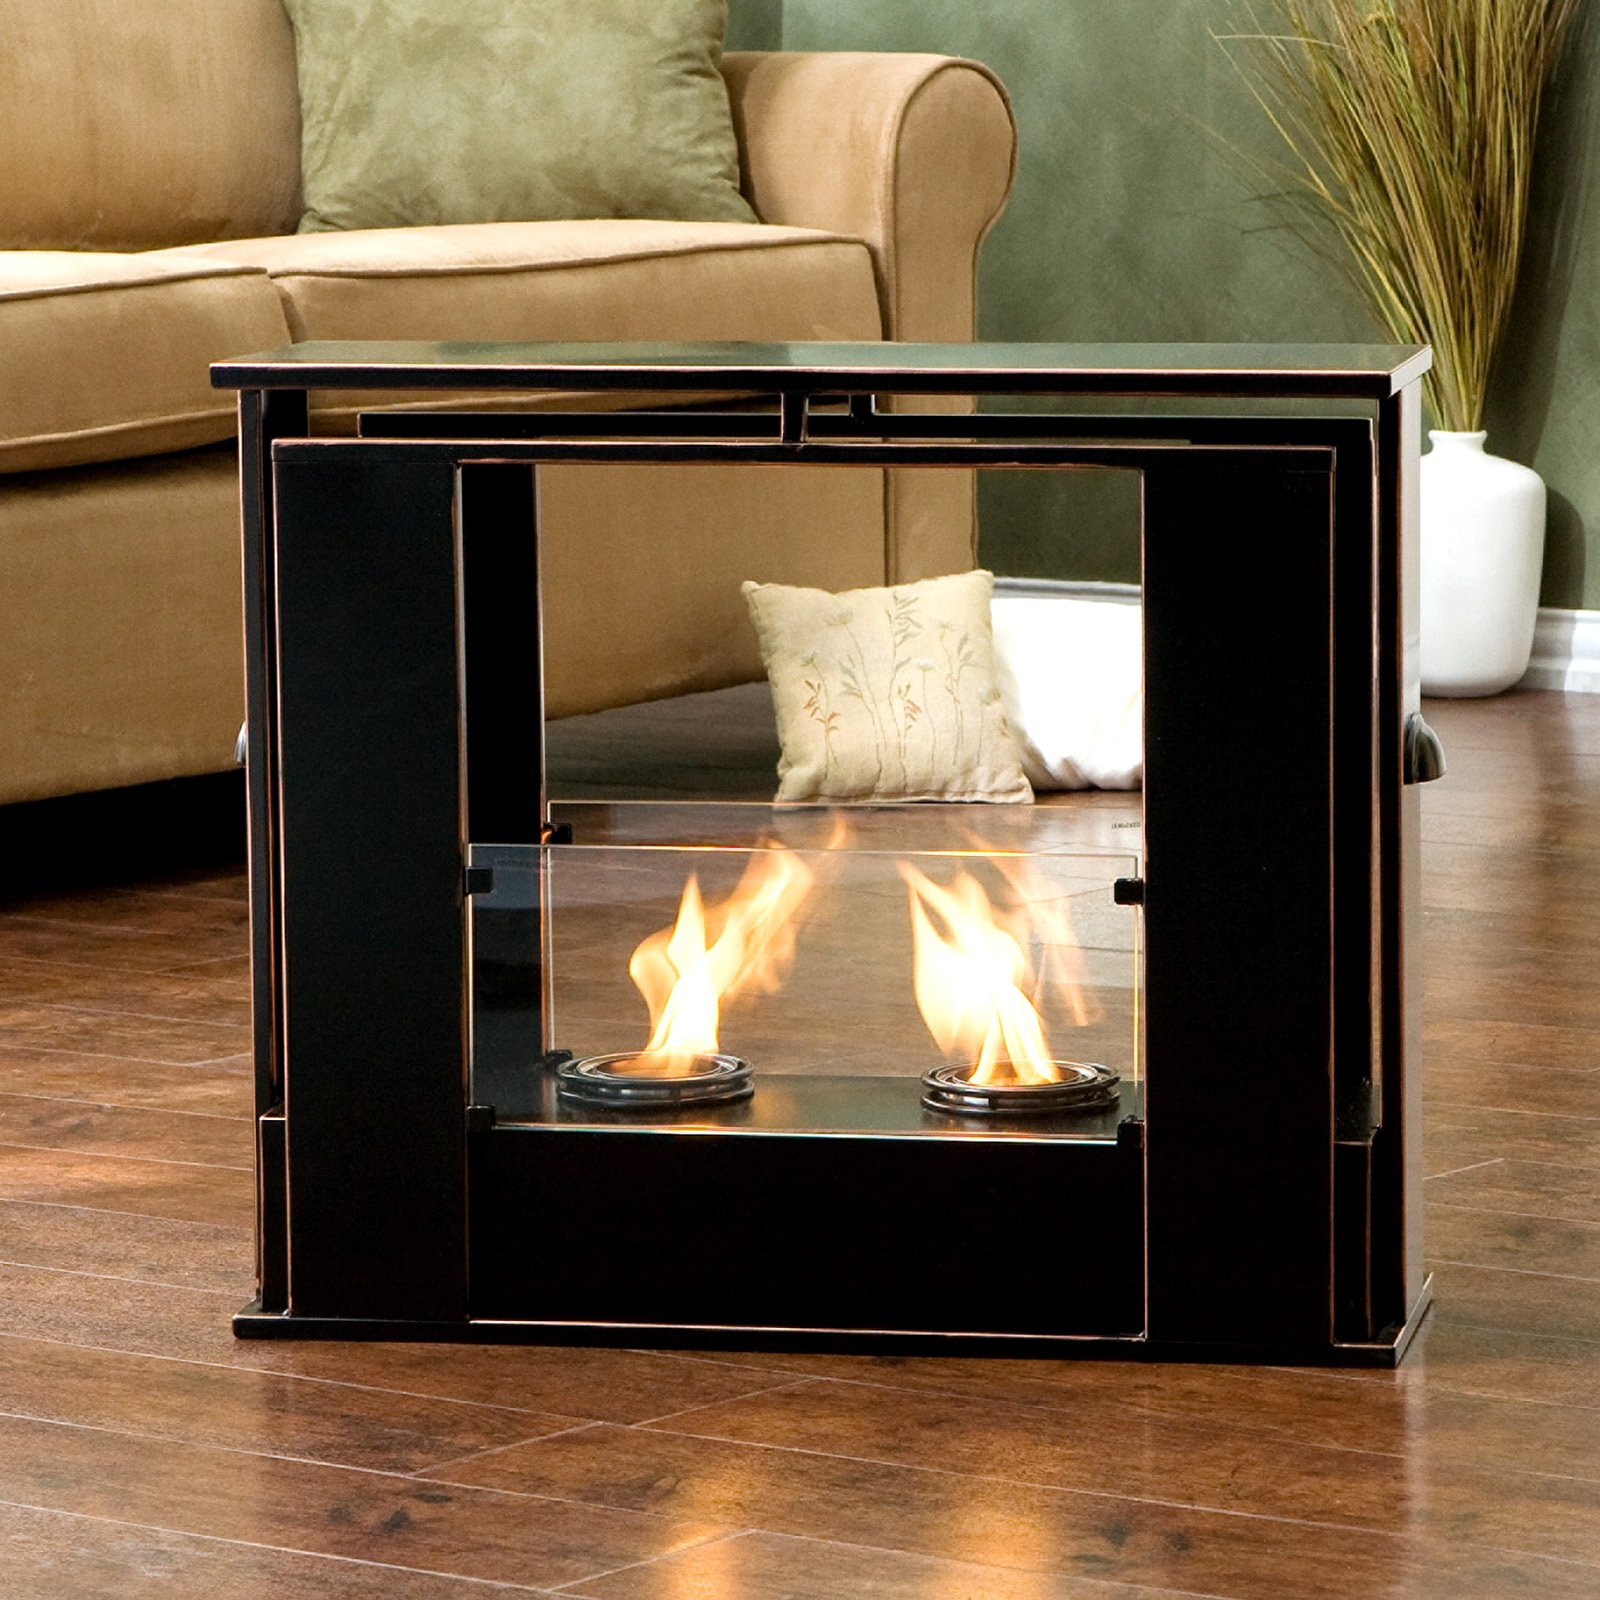 12 cozy u0026 portable fireplace ideas for the modern home